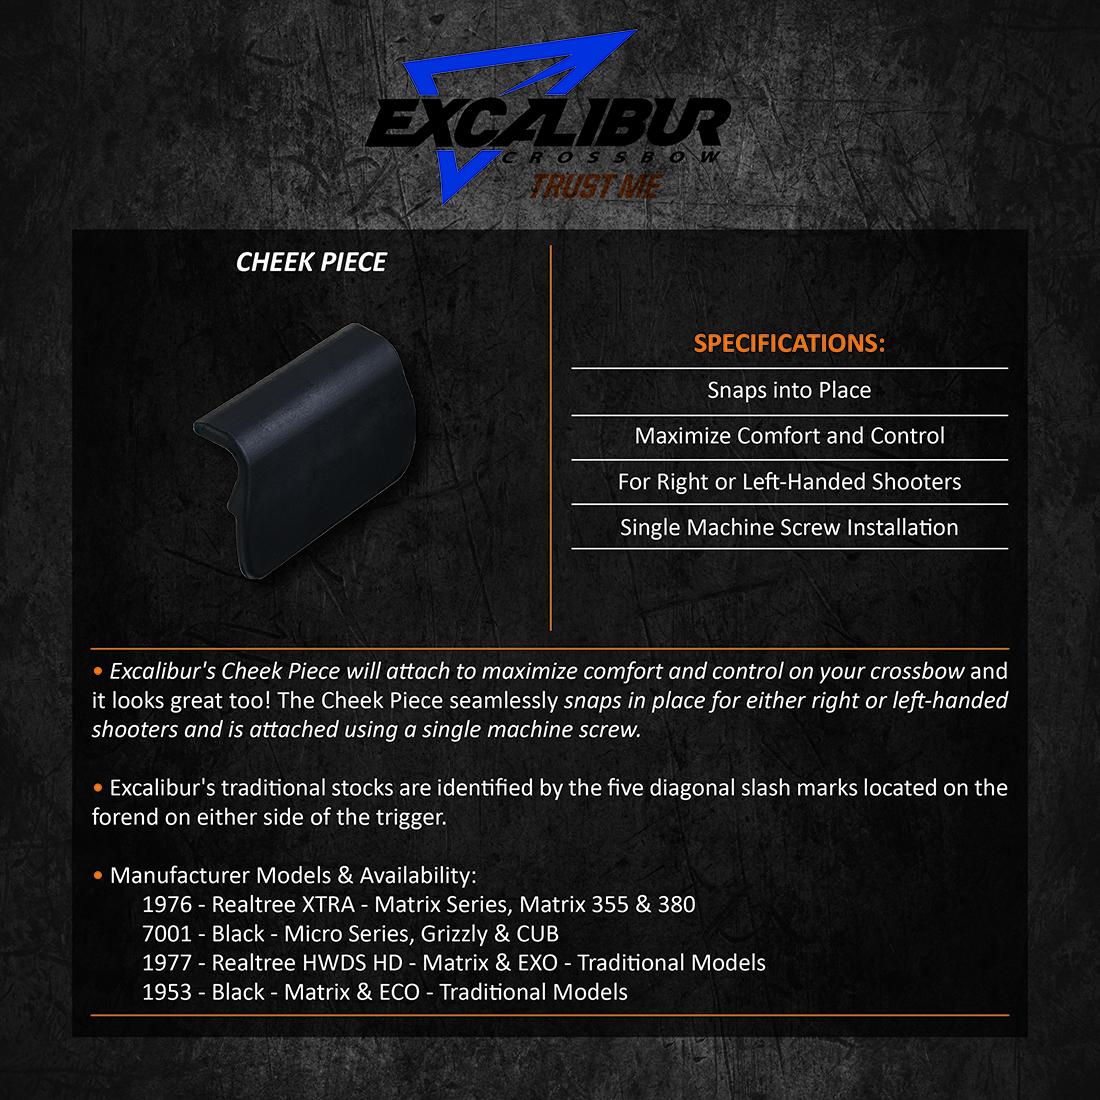 Excalibur_Cheek_Piece_Product_Description